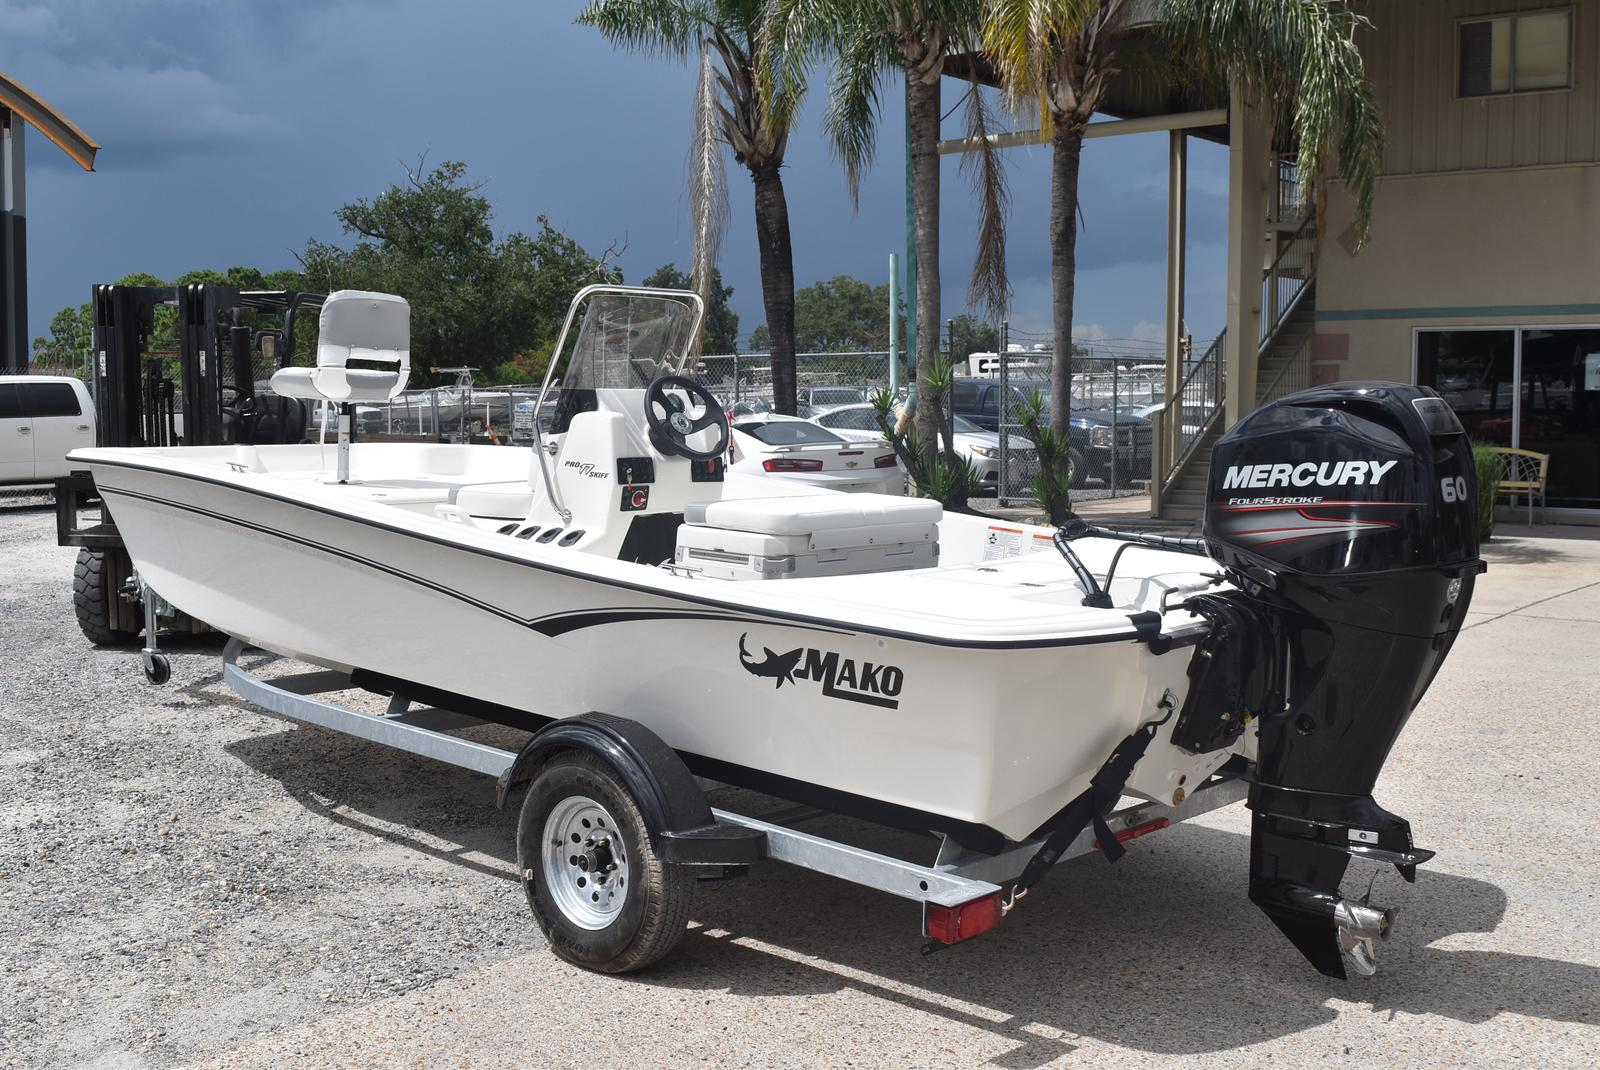 2020 Mako boat for sale, model of the boat is Pro Skiff 17, 75 ELPT & Image # 157 of 702